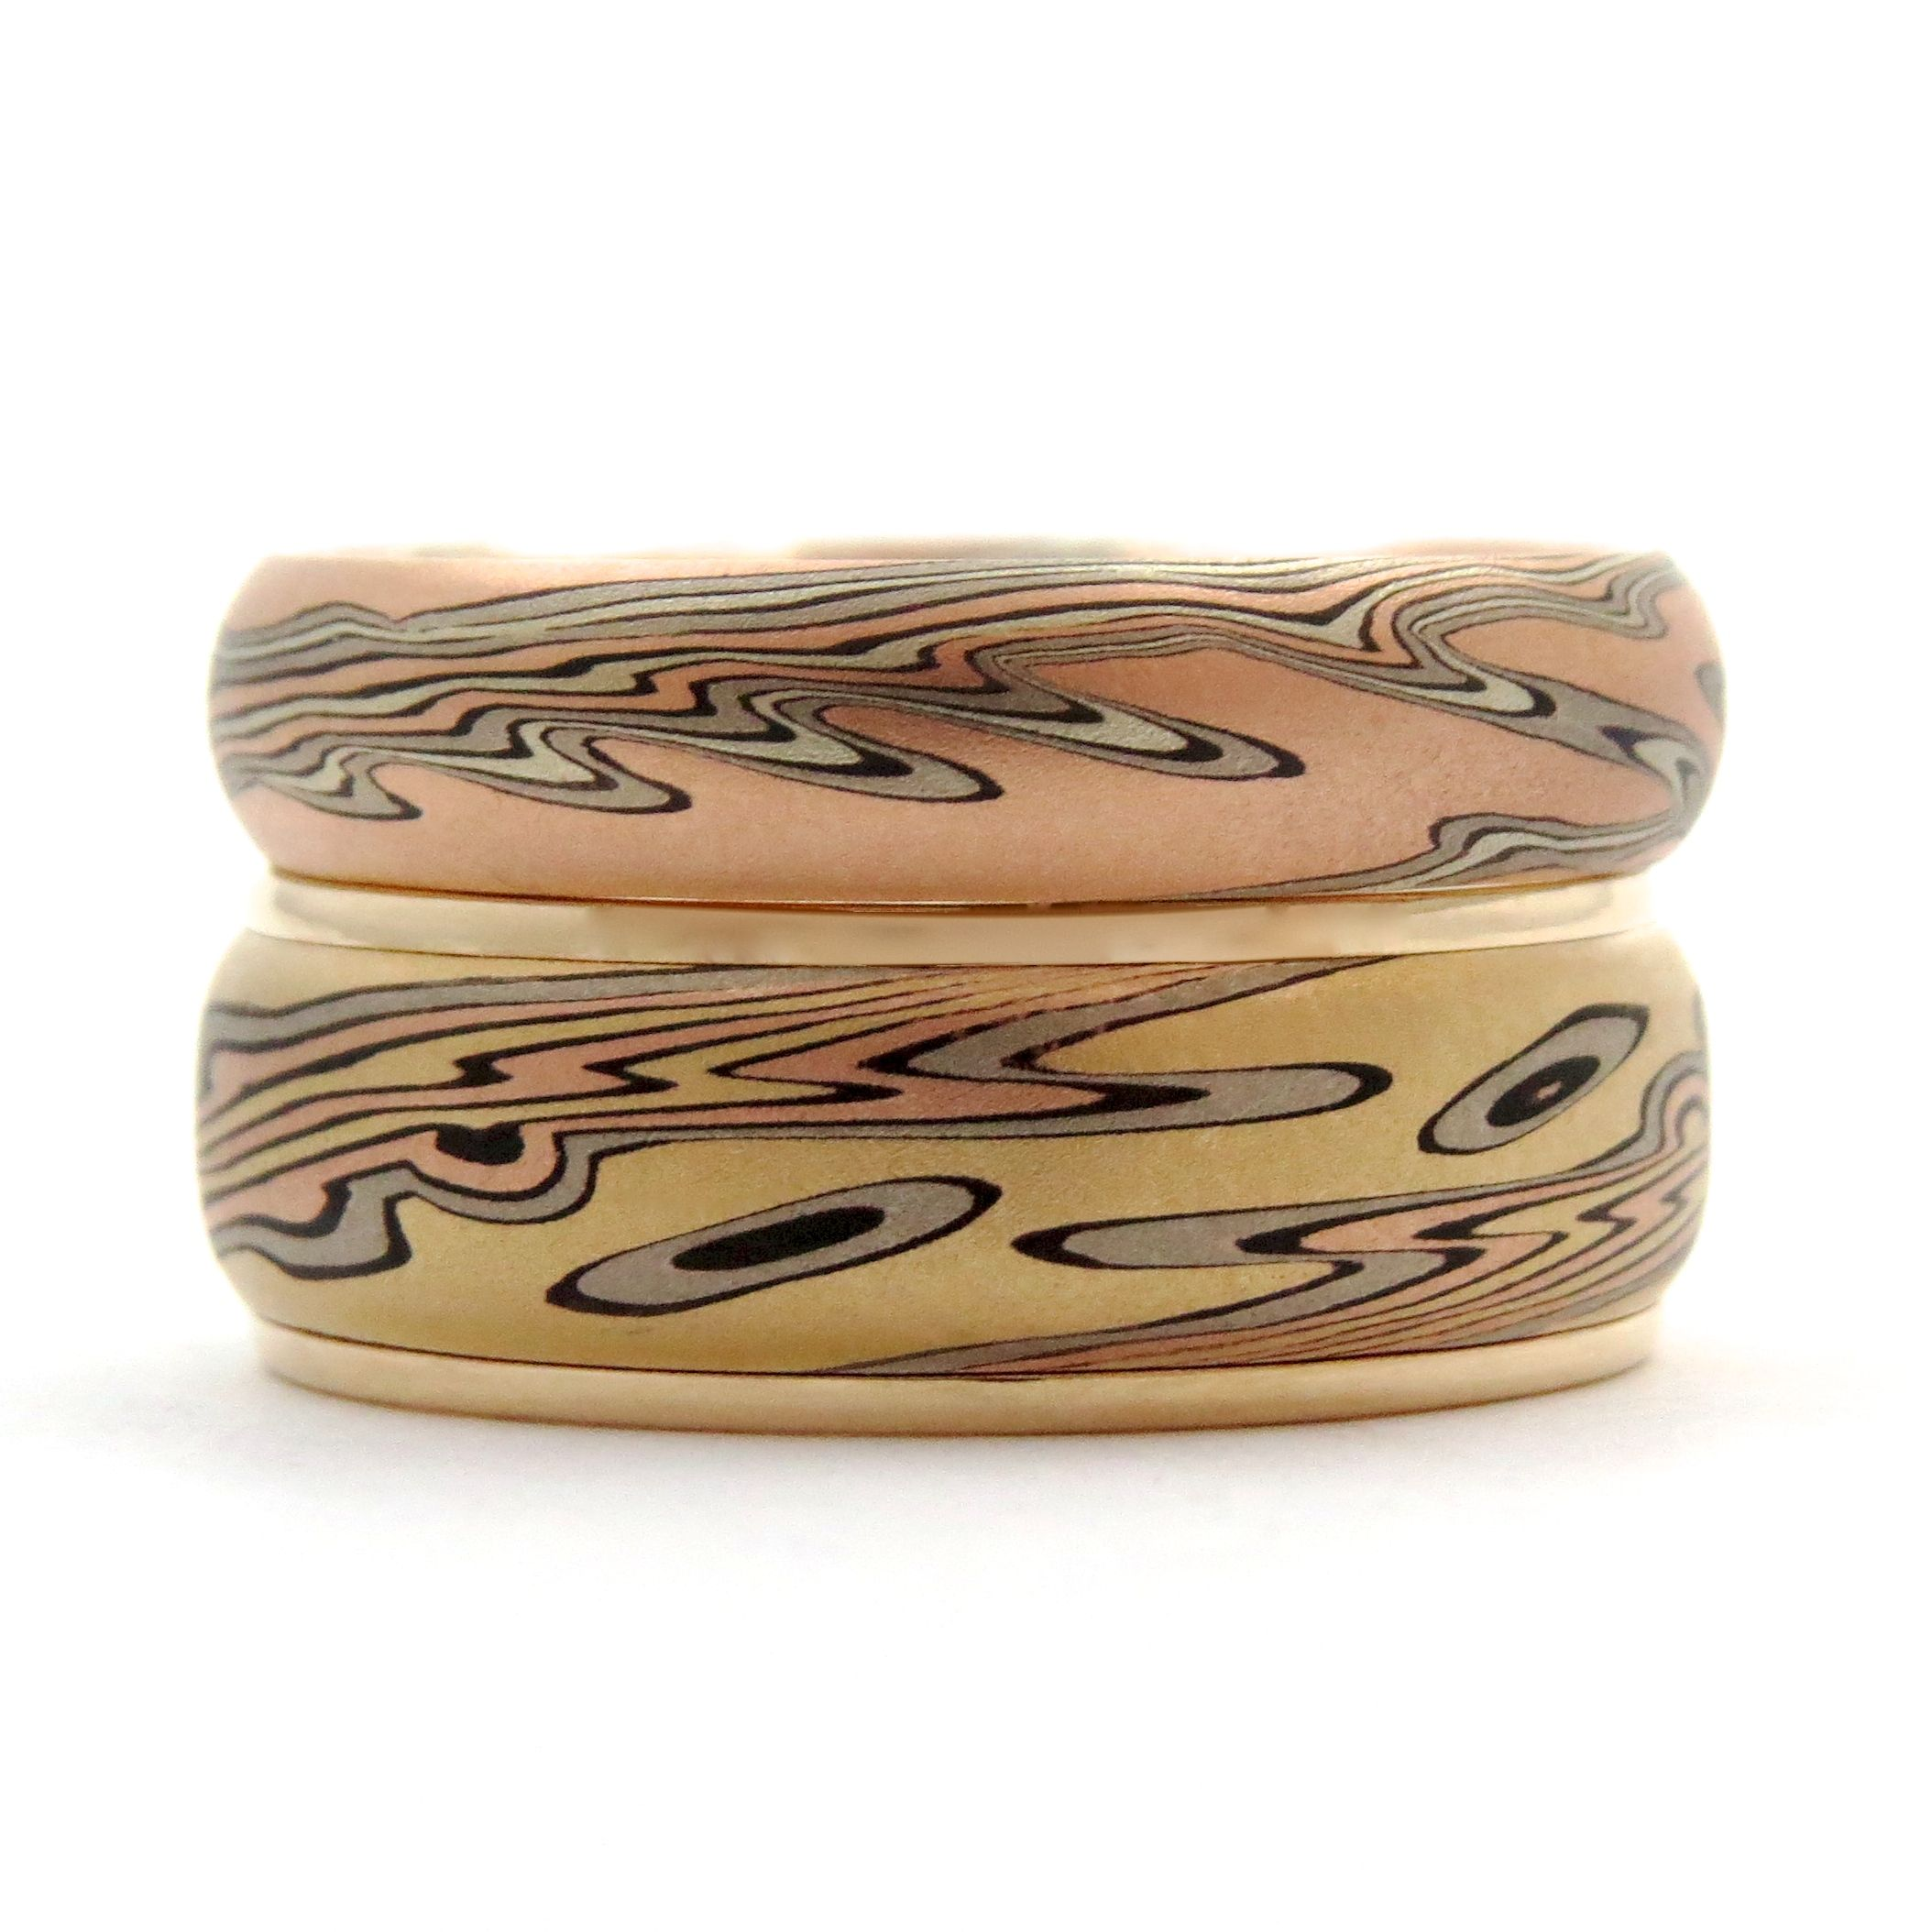 For Affonso Mokume Gane is a highly skilled ancient art form of